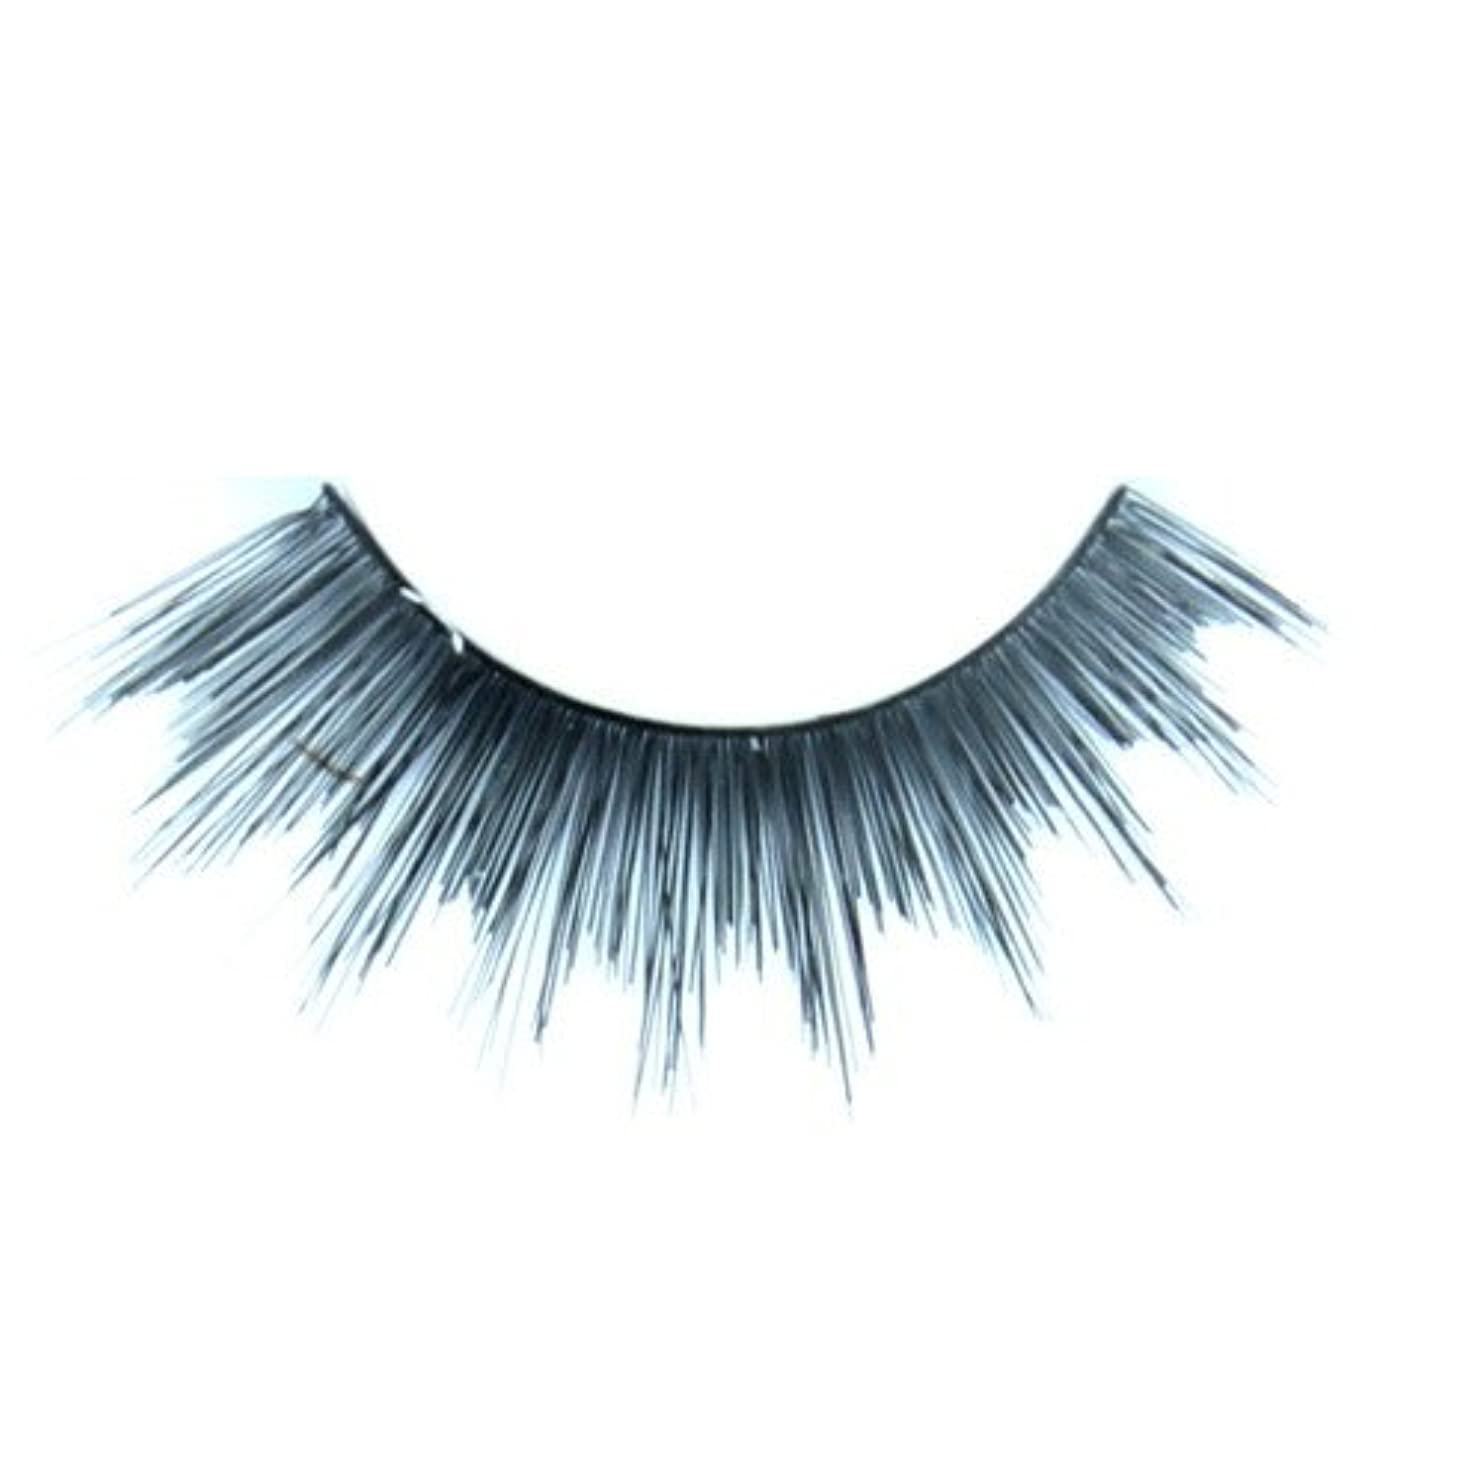 収穫花嫁非行(3 Pack) CHERRY BLOSSOM False Eyelashes - CBFL074 (並行輸入品)